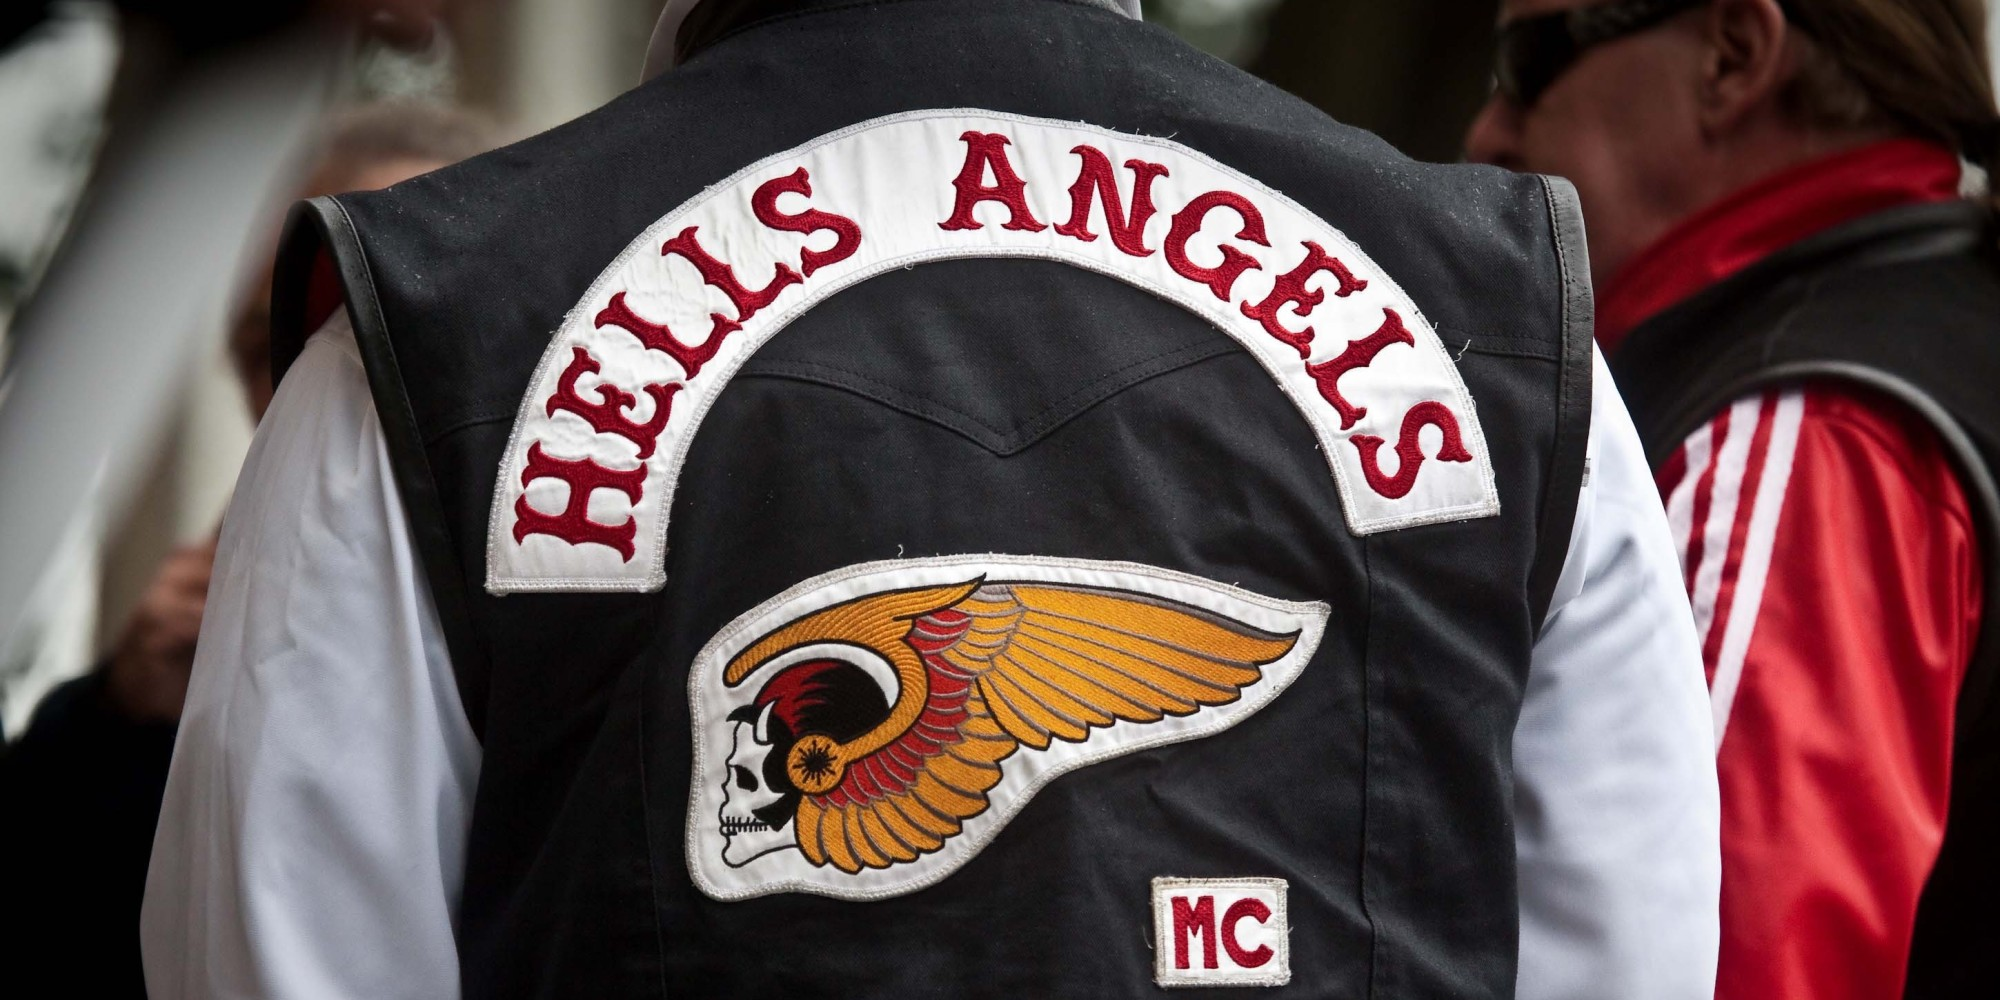 Hells Angels Lethbridge Crackdown Leads To 'Bullying ...